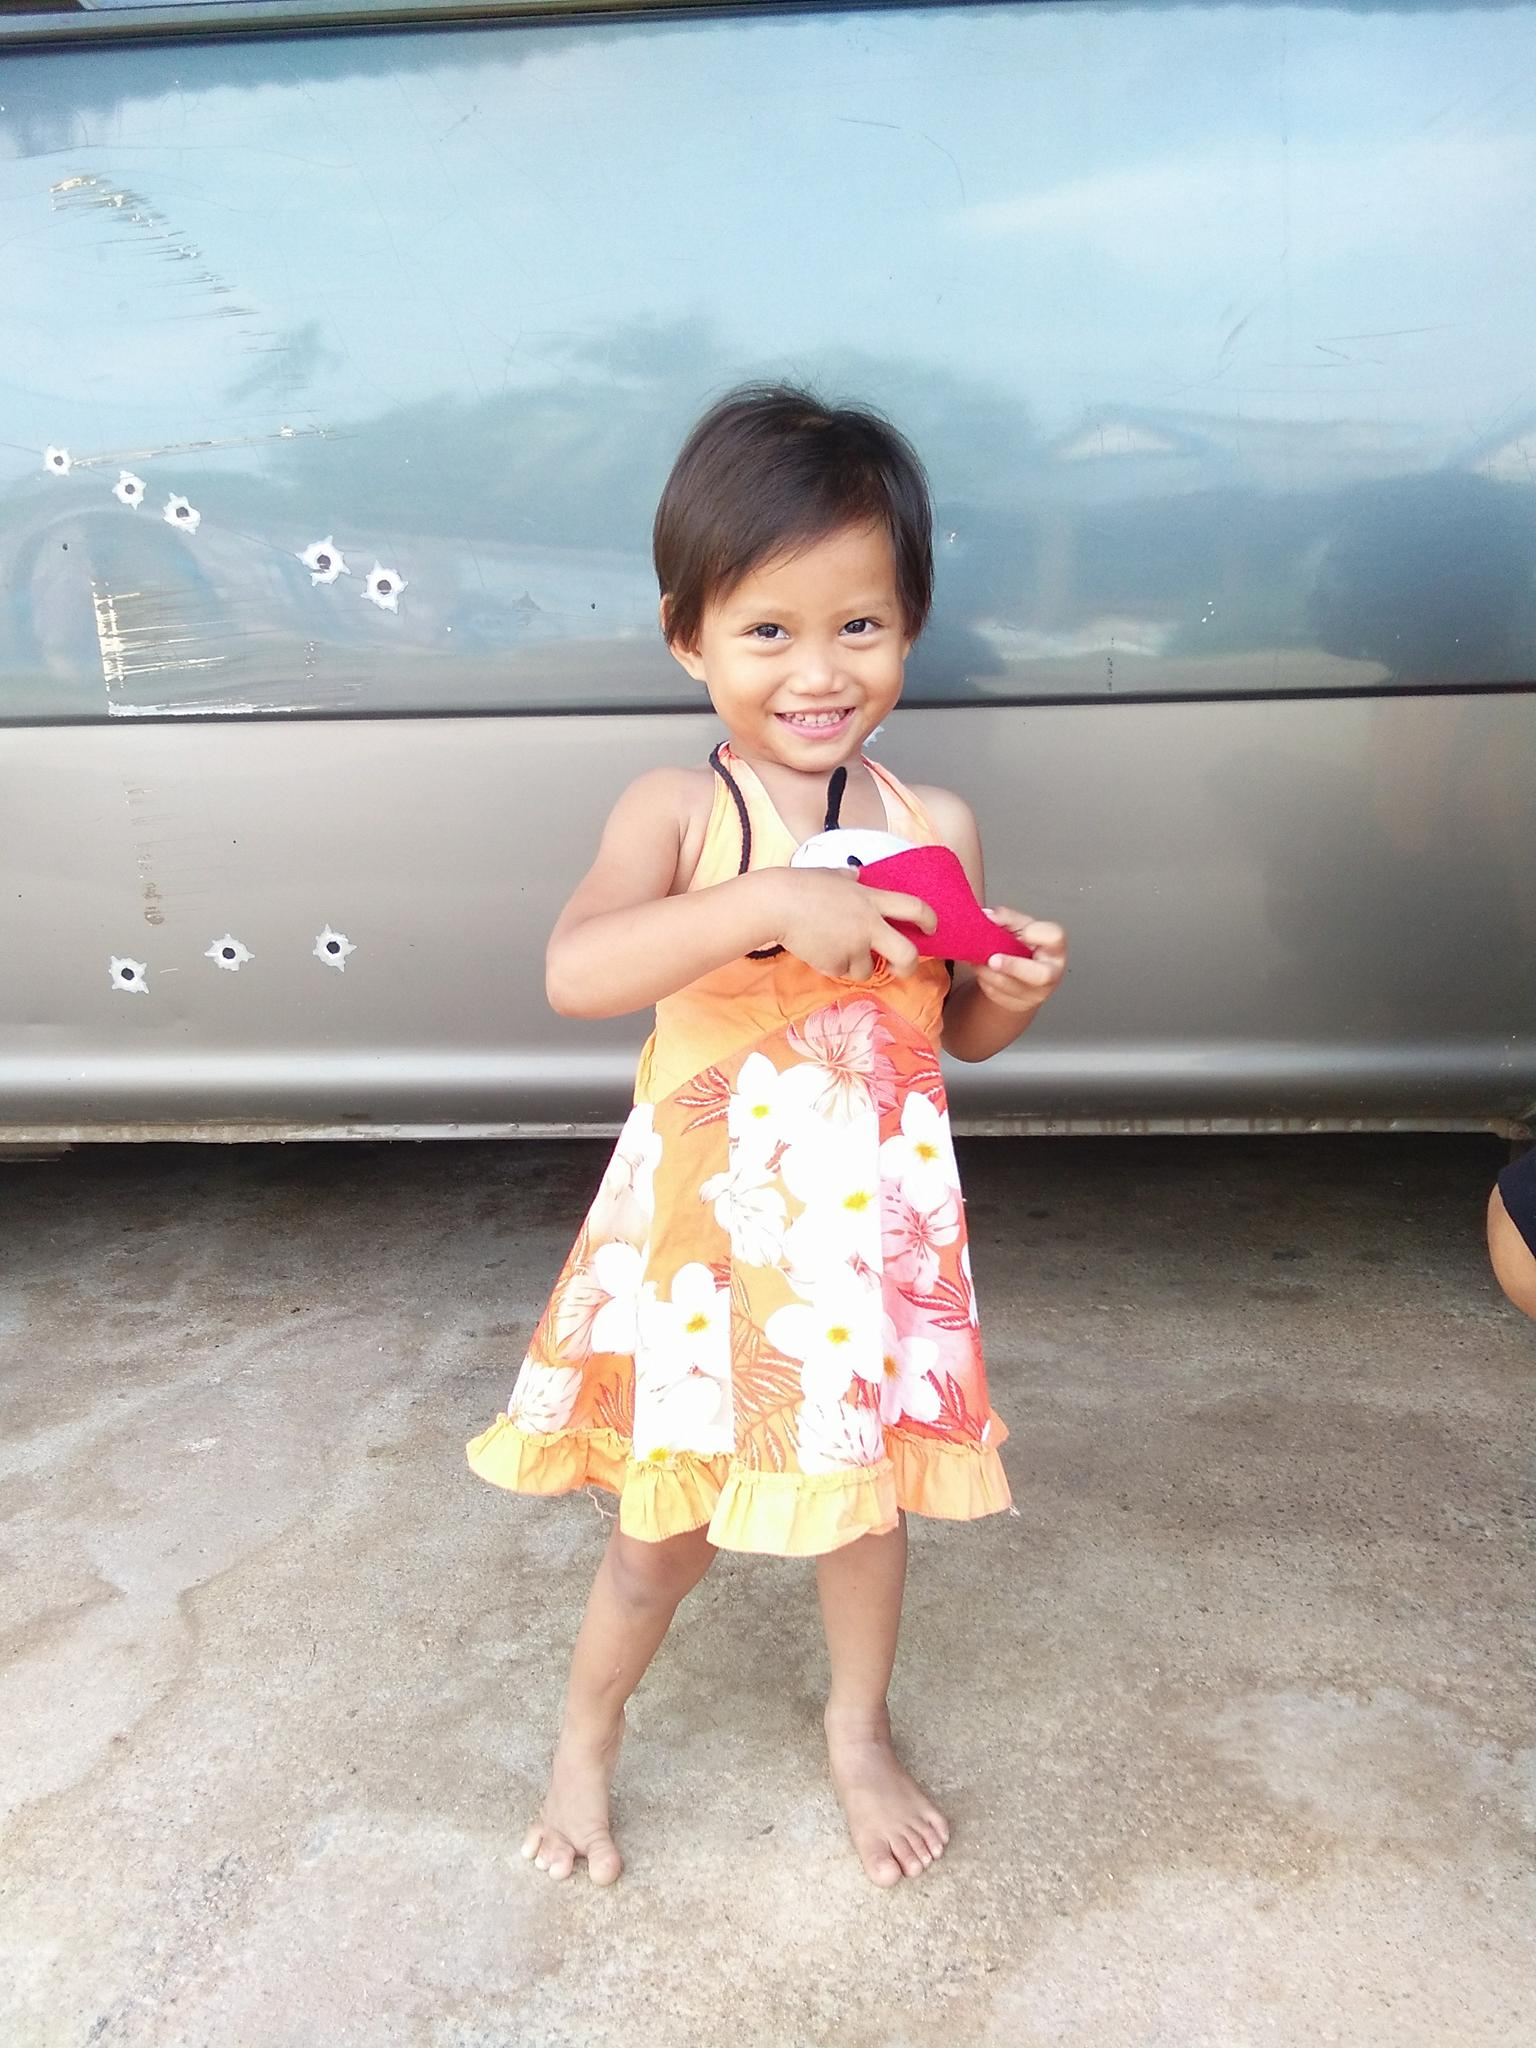 Anyong (3 years old, Girl)